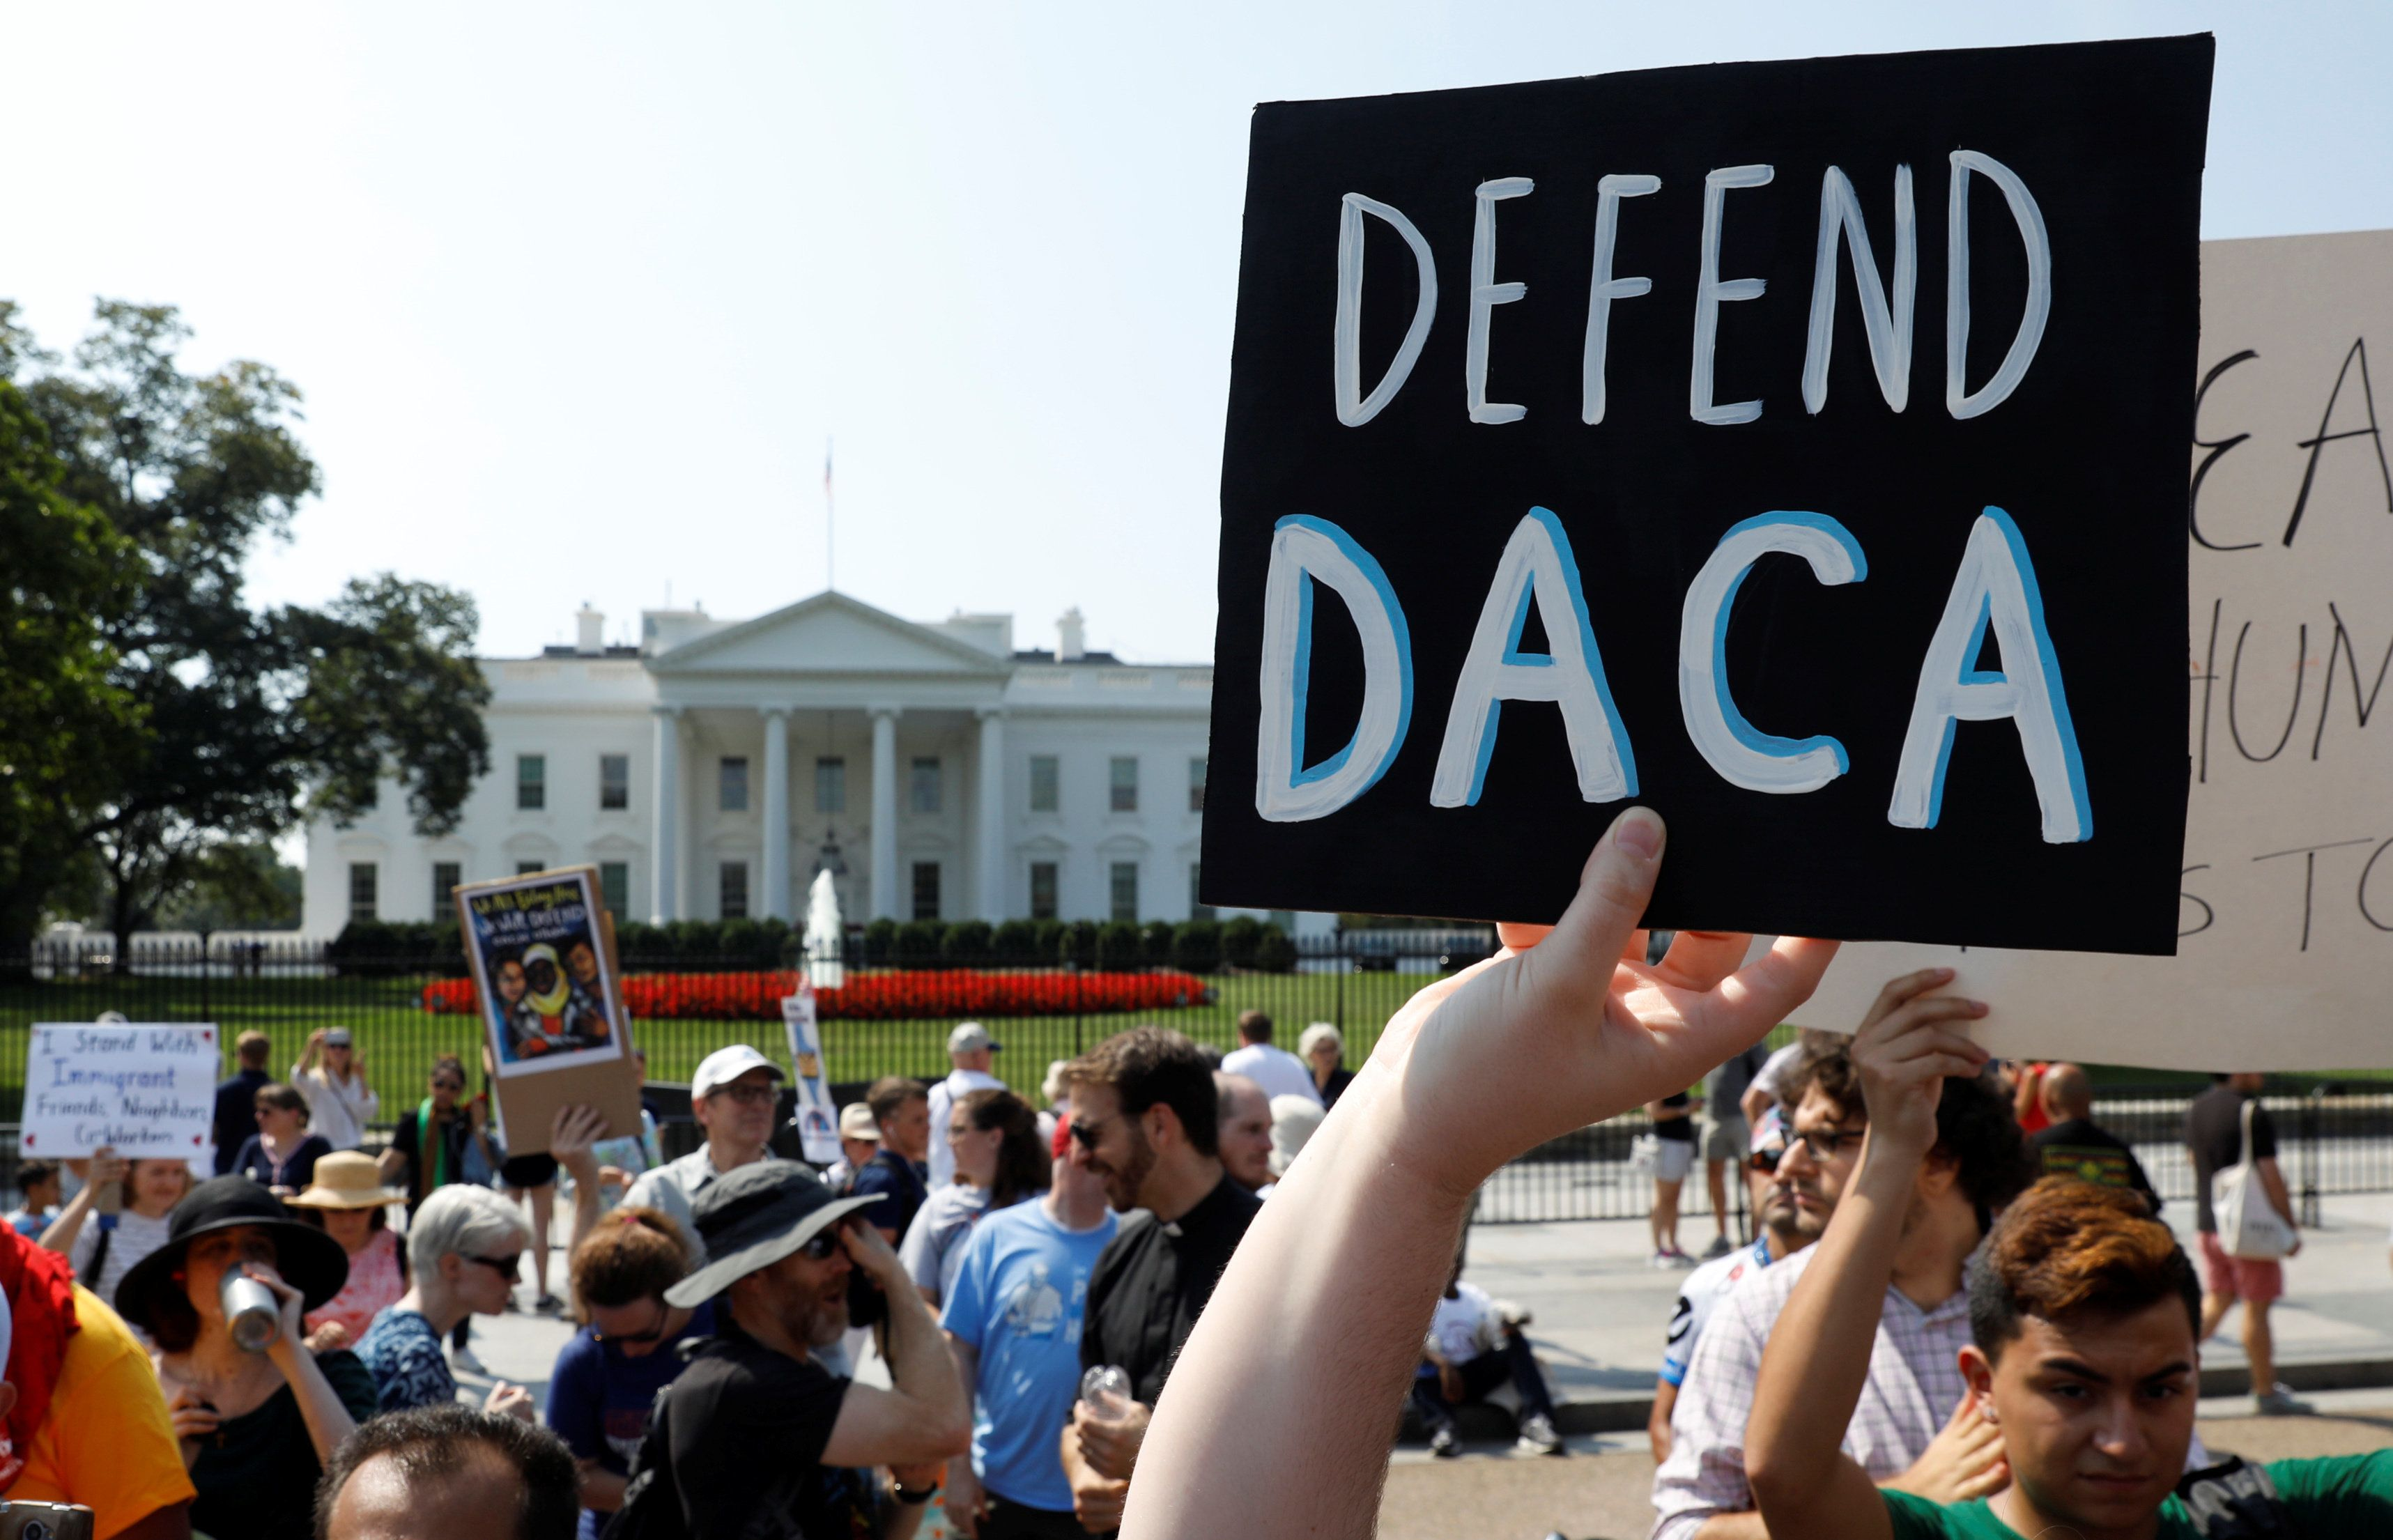 Demonstrators protest in front of the White House after the Trump administration scrapped DACA on September 5, 2017.&nbs